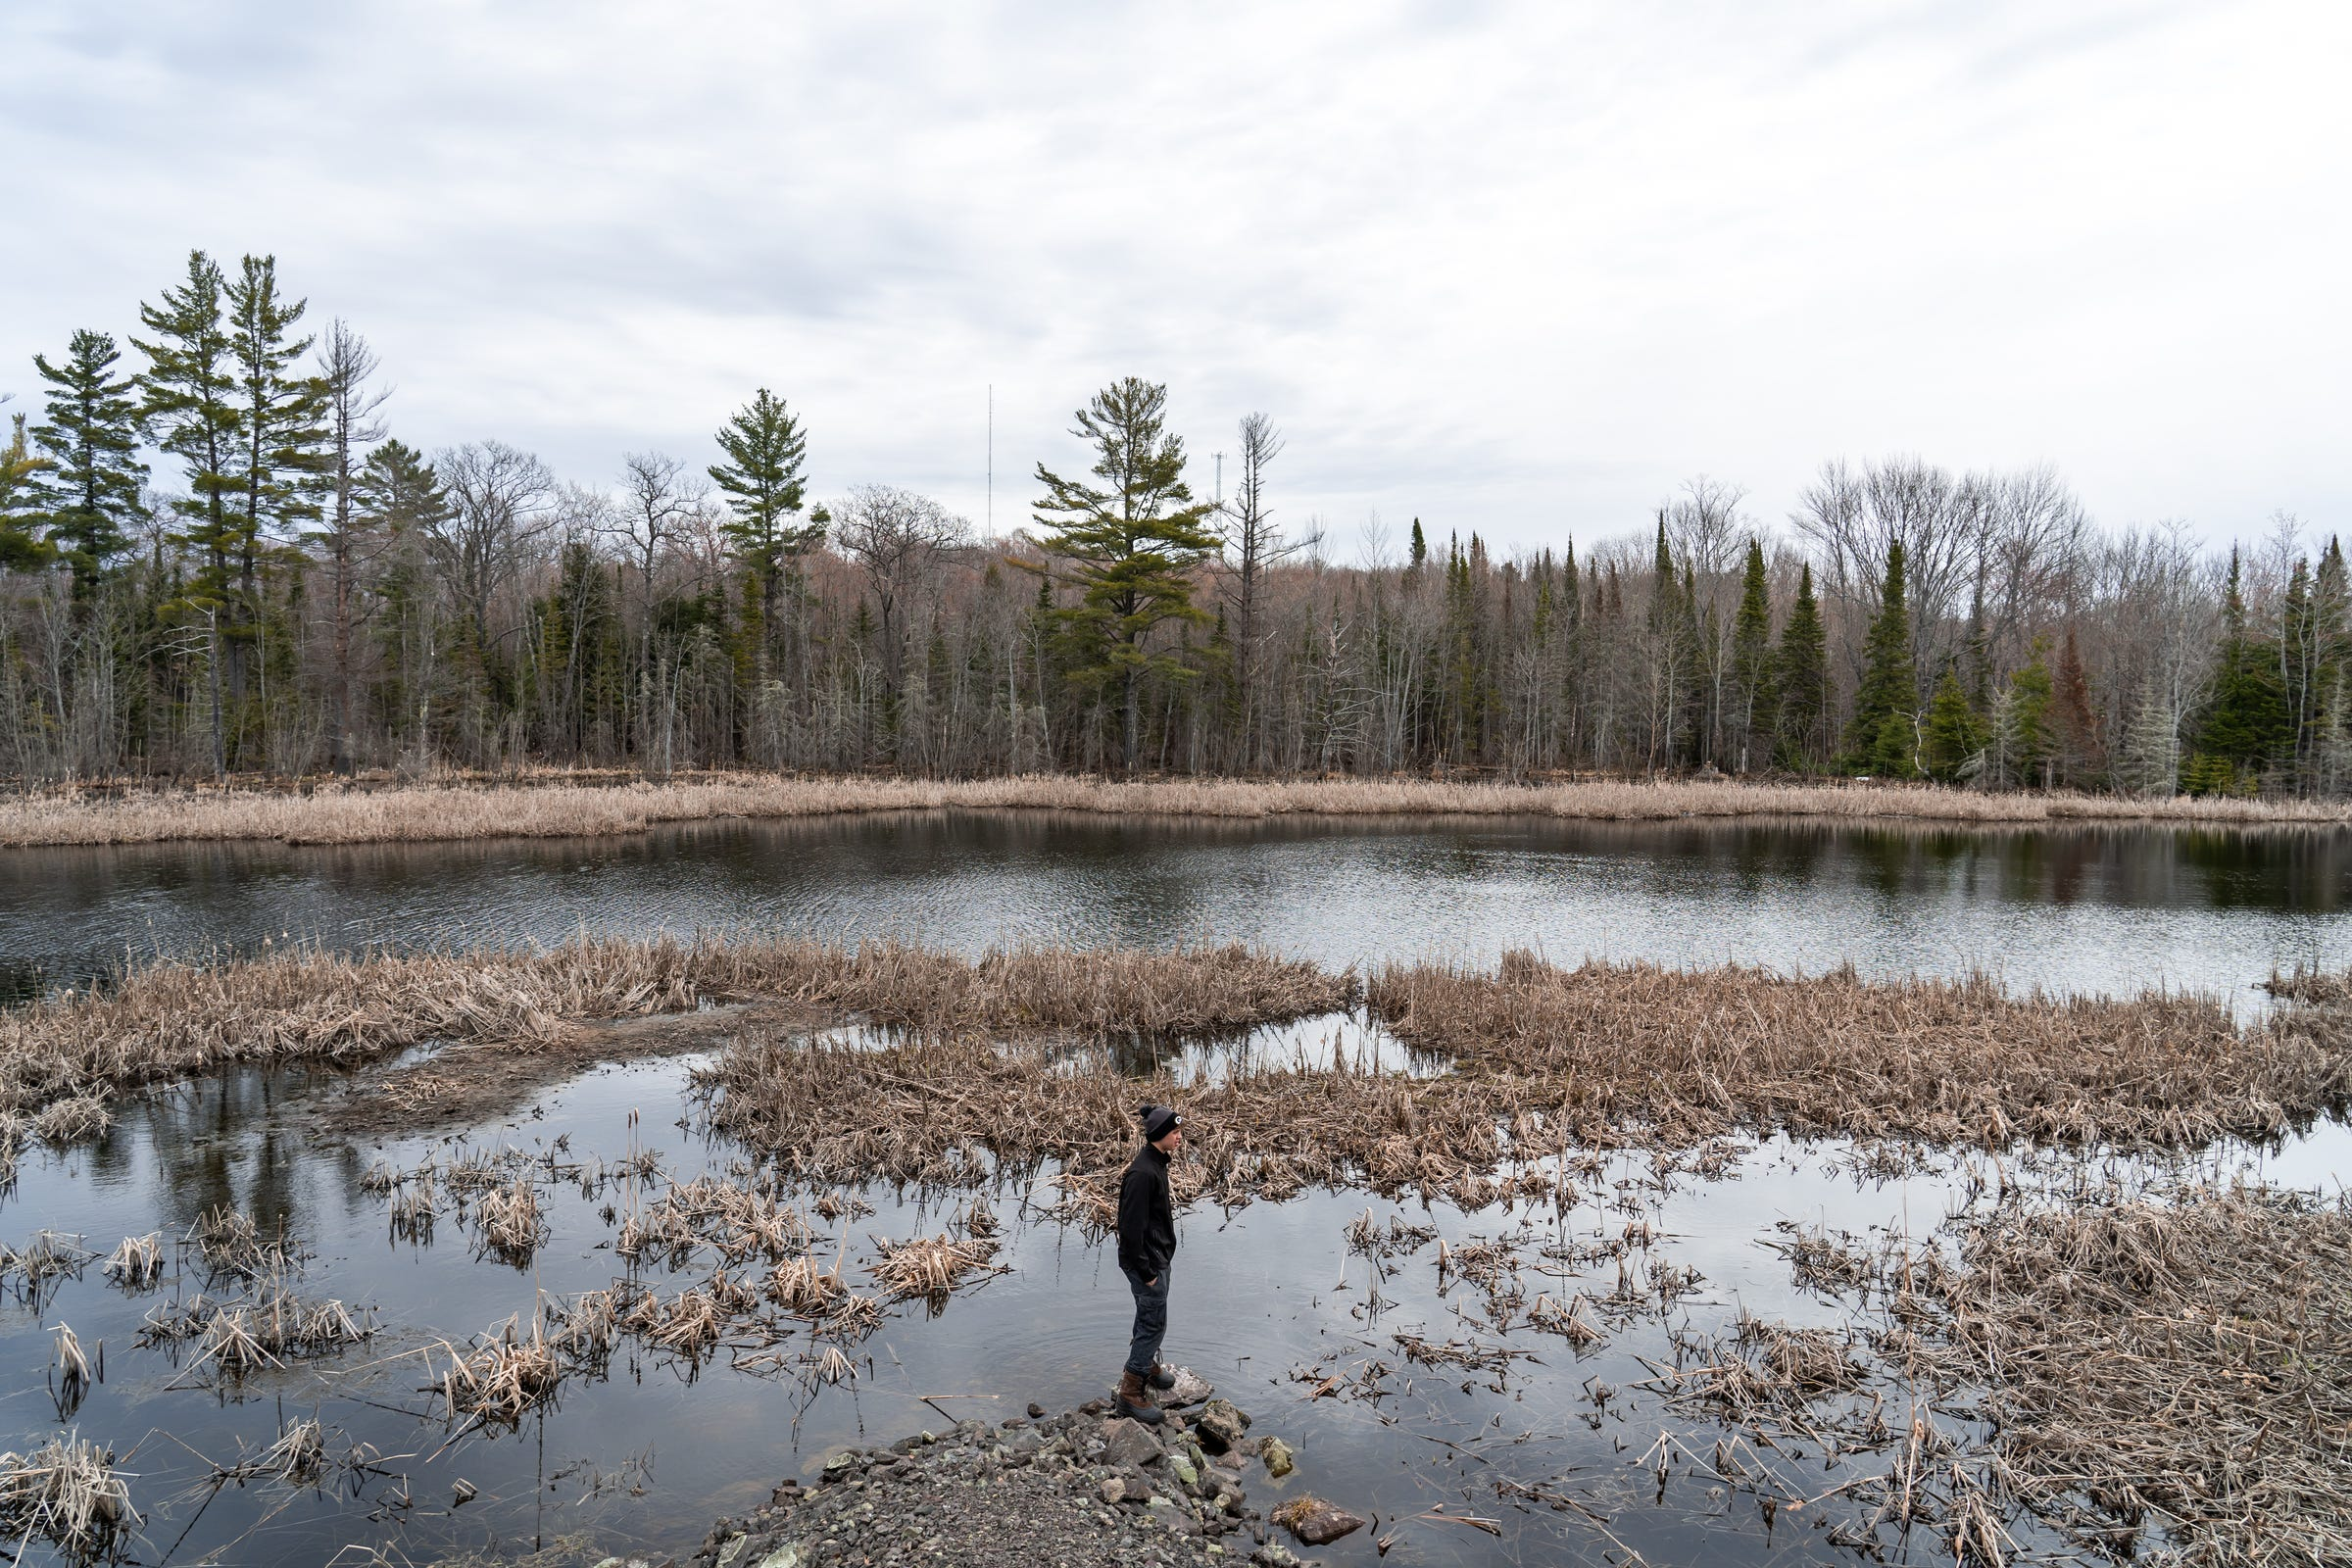 Elm River Township School student Daniel Bramble, 15, looks over a pond during recess on Wednesday, May 8, 2019 in Elm River Township in Michigan's Upper Peninsula.